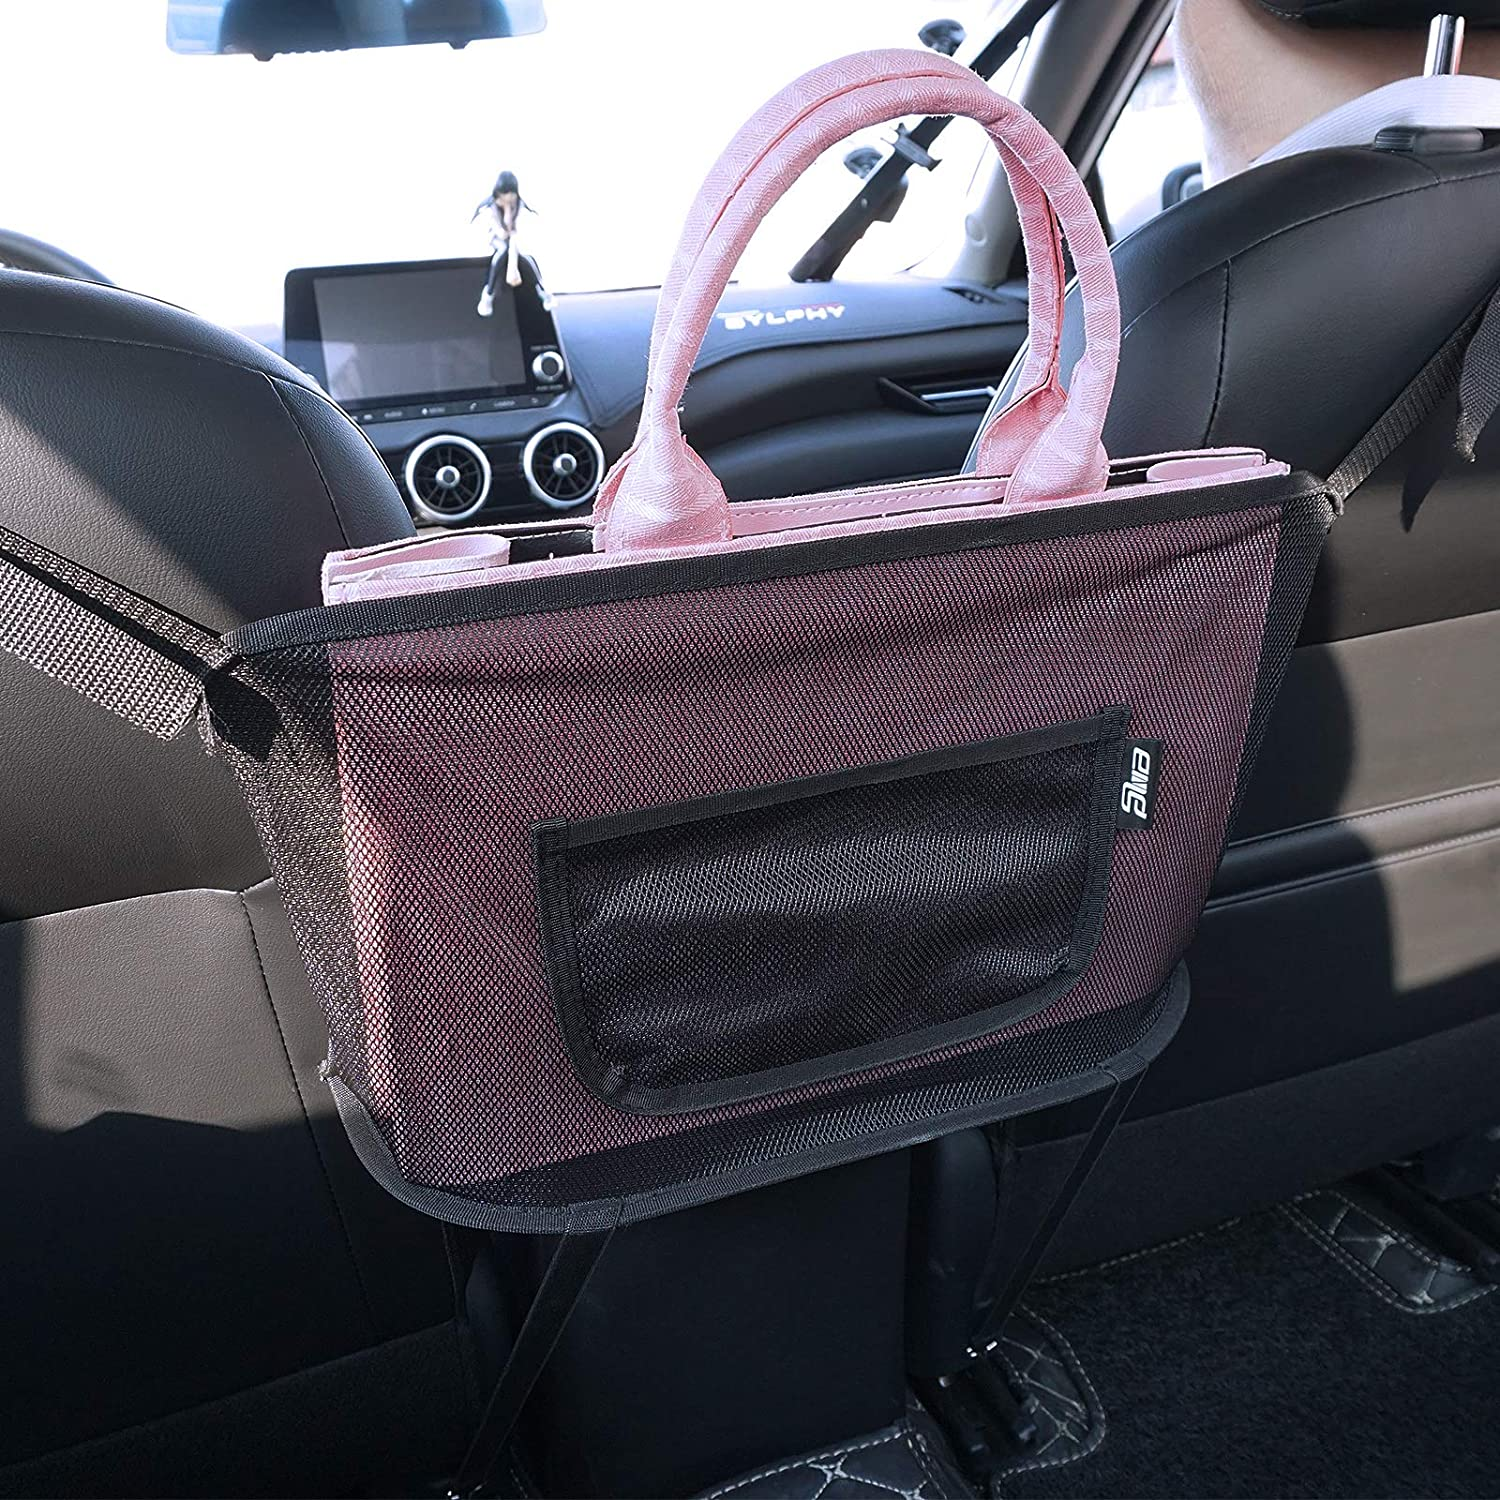 Car Safety and trust Mesh Organizer Ranking integrated 1st place Console Seat Back Pouch Purse Stora